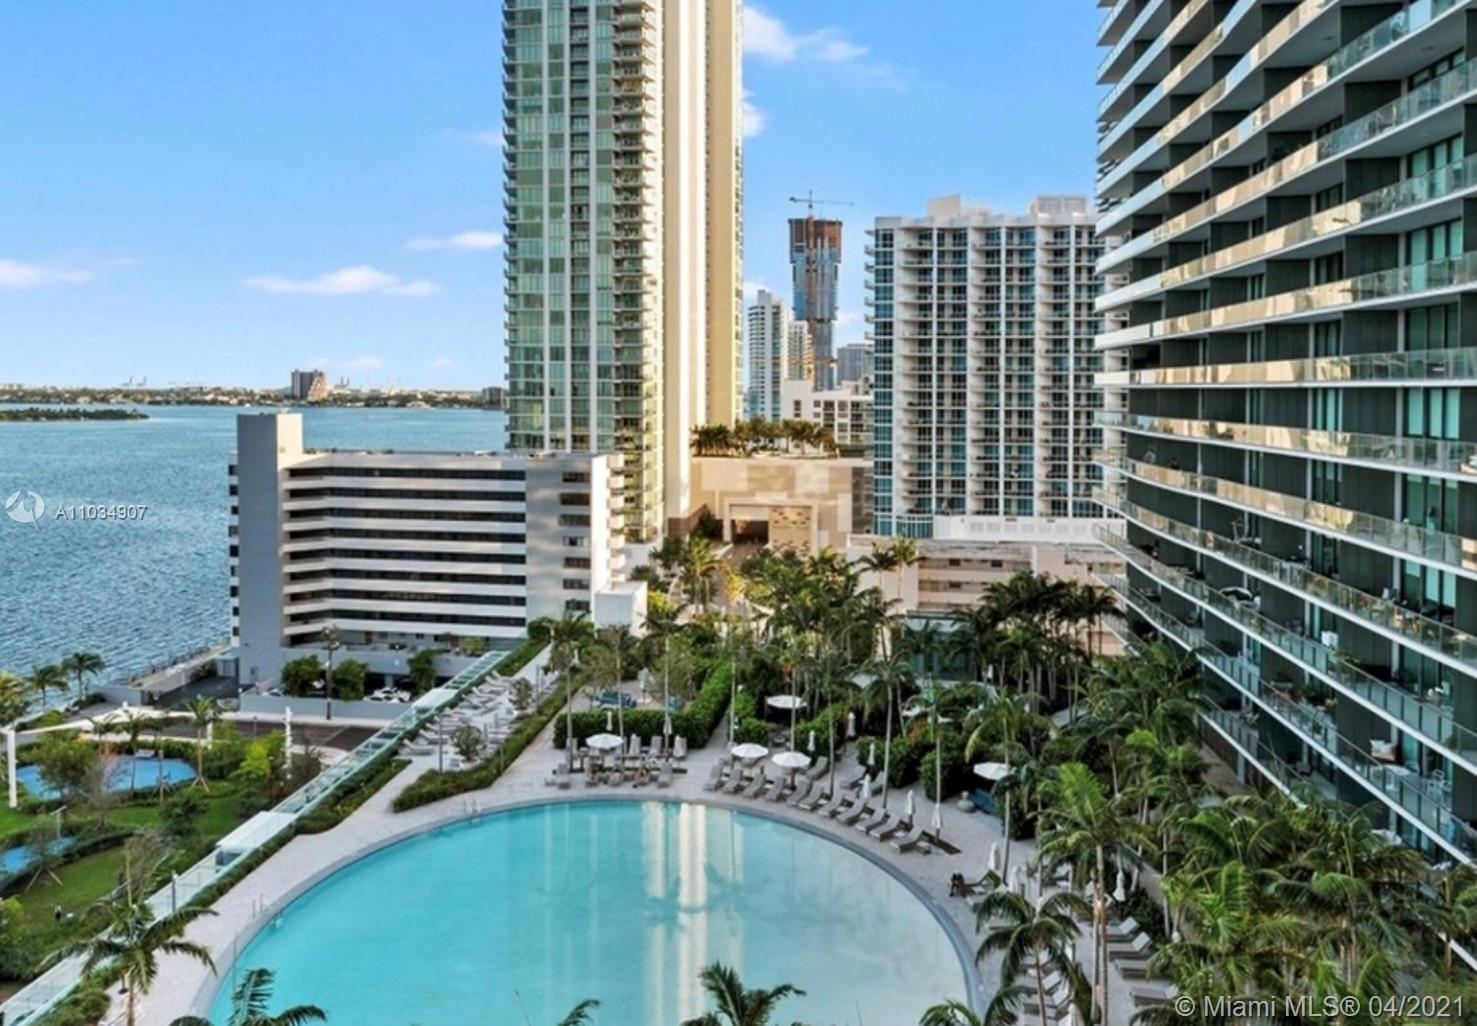 Luxury, new construction available for sale at Paraiso Bay in Edgewater, Miami. Amazing new construc